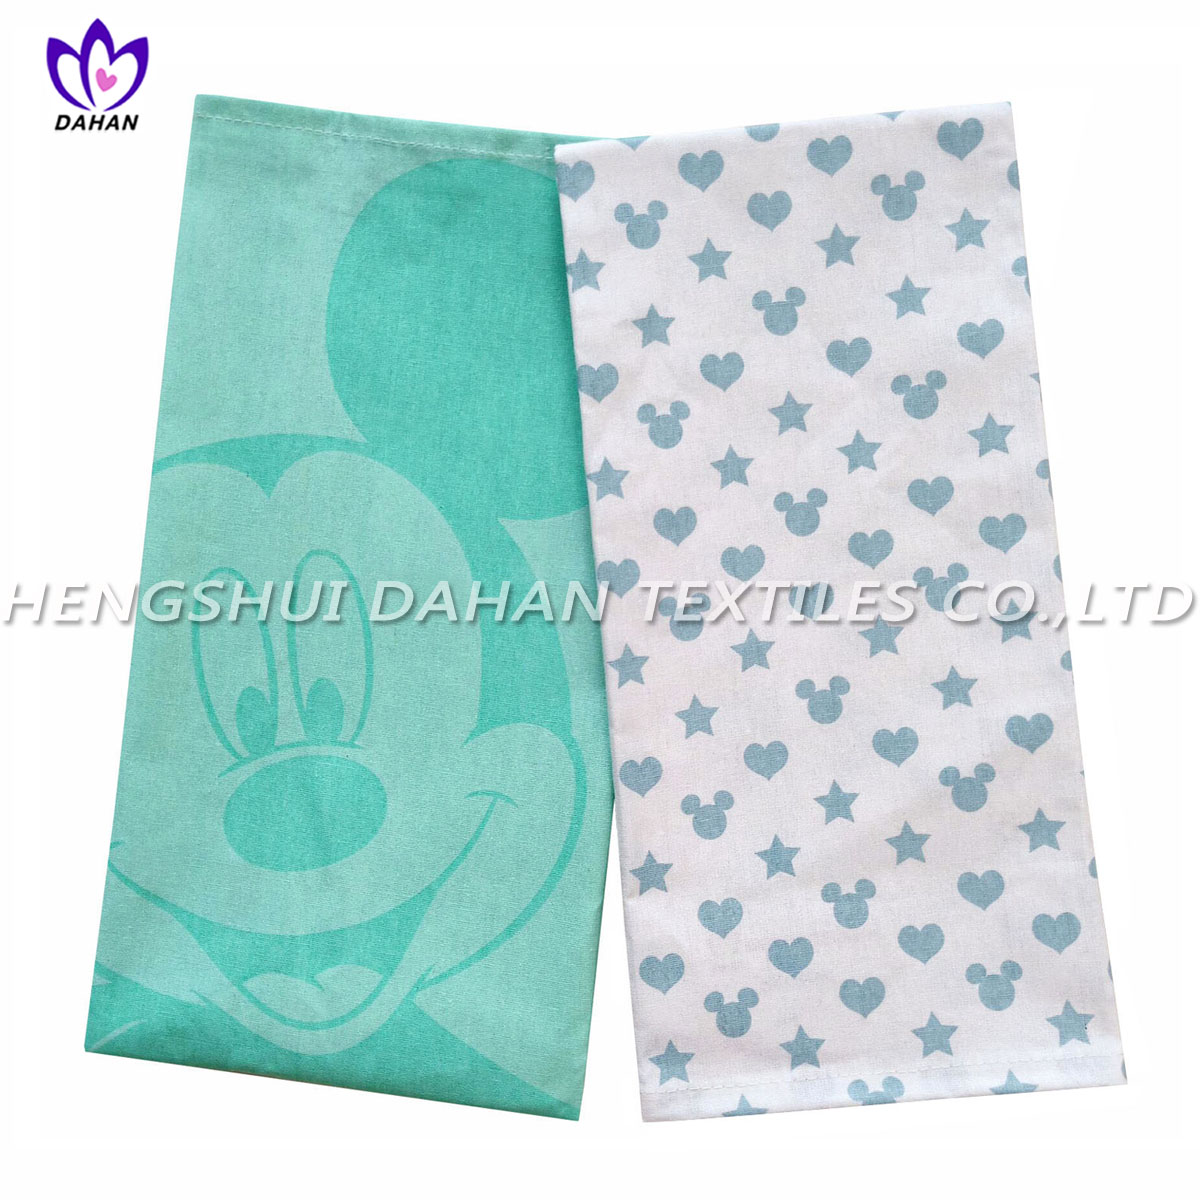 PR16 100%cotton printing tea towel,kitchen towel.